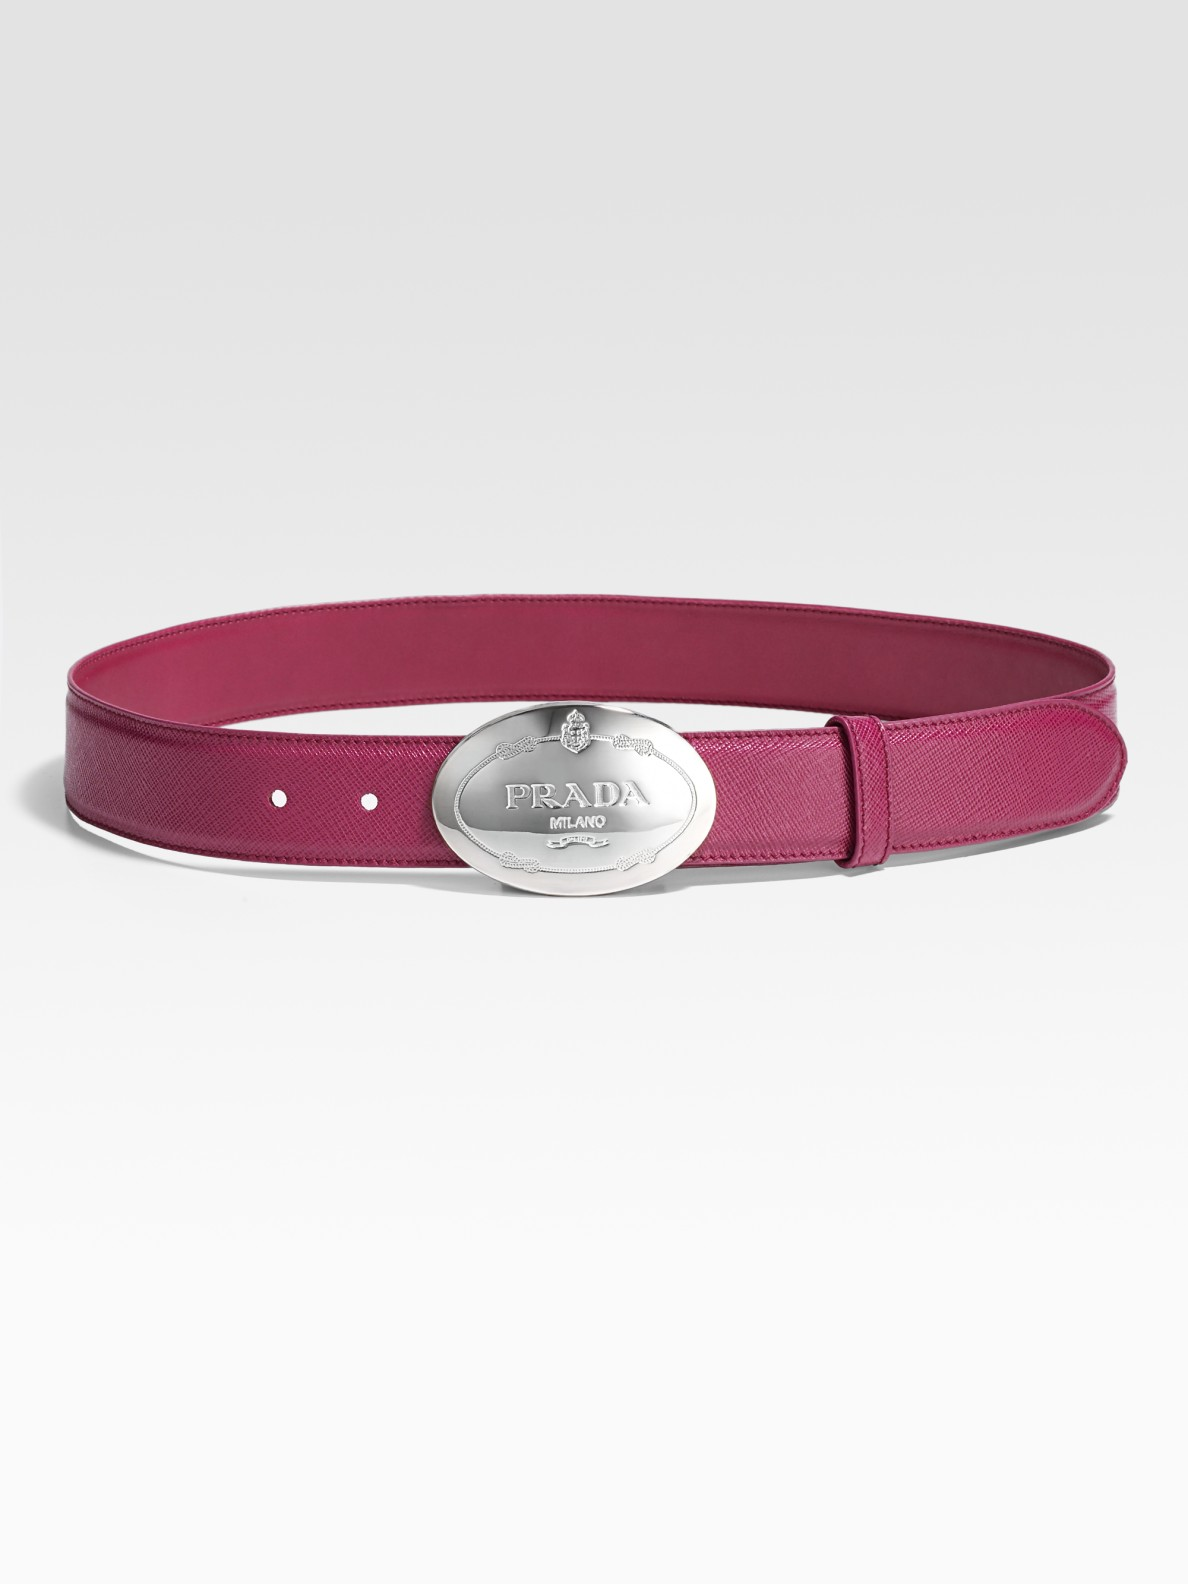 Prada Saffiano Engraved Belt in Purple | Lyst